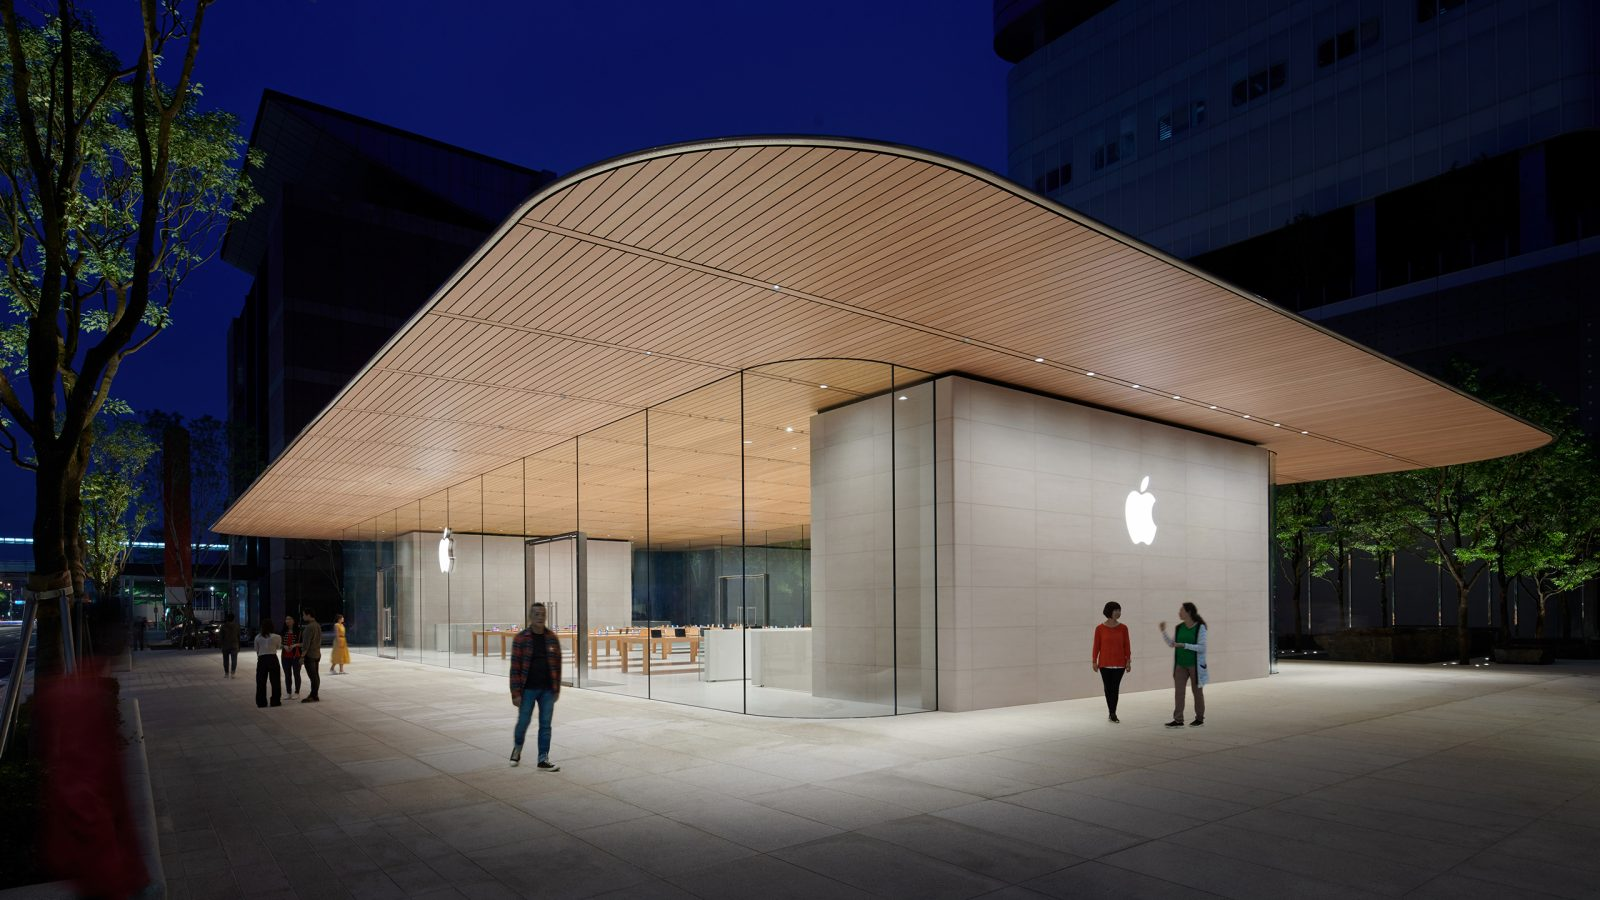 Xinyi A13 Apple Store design details previewed in Taipei